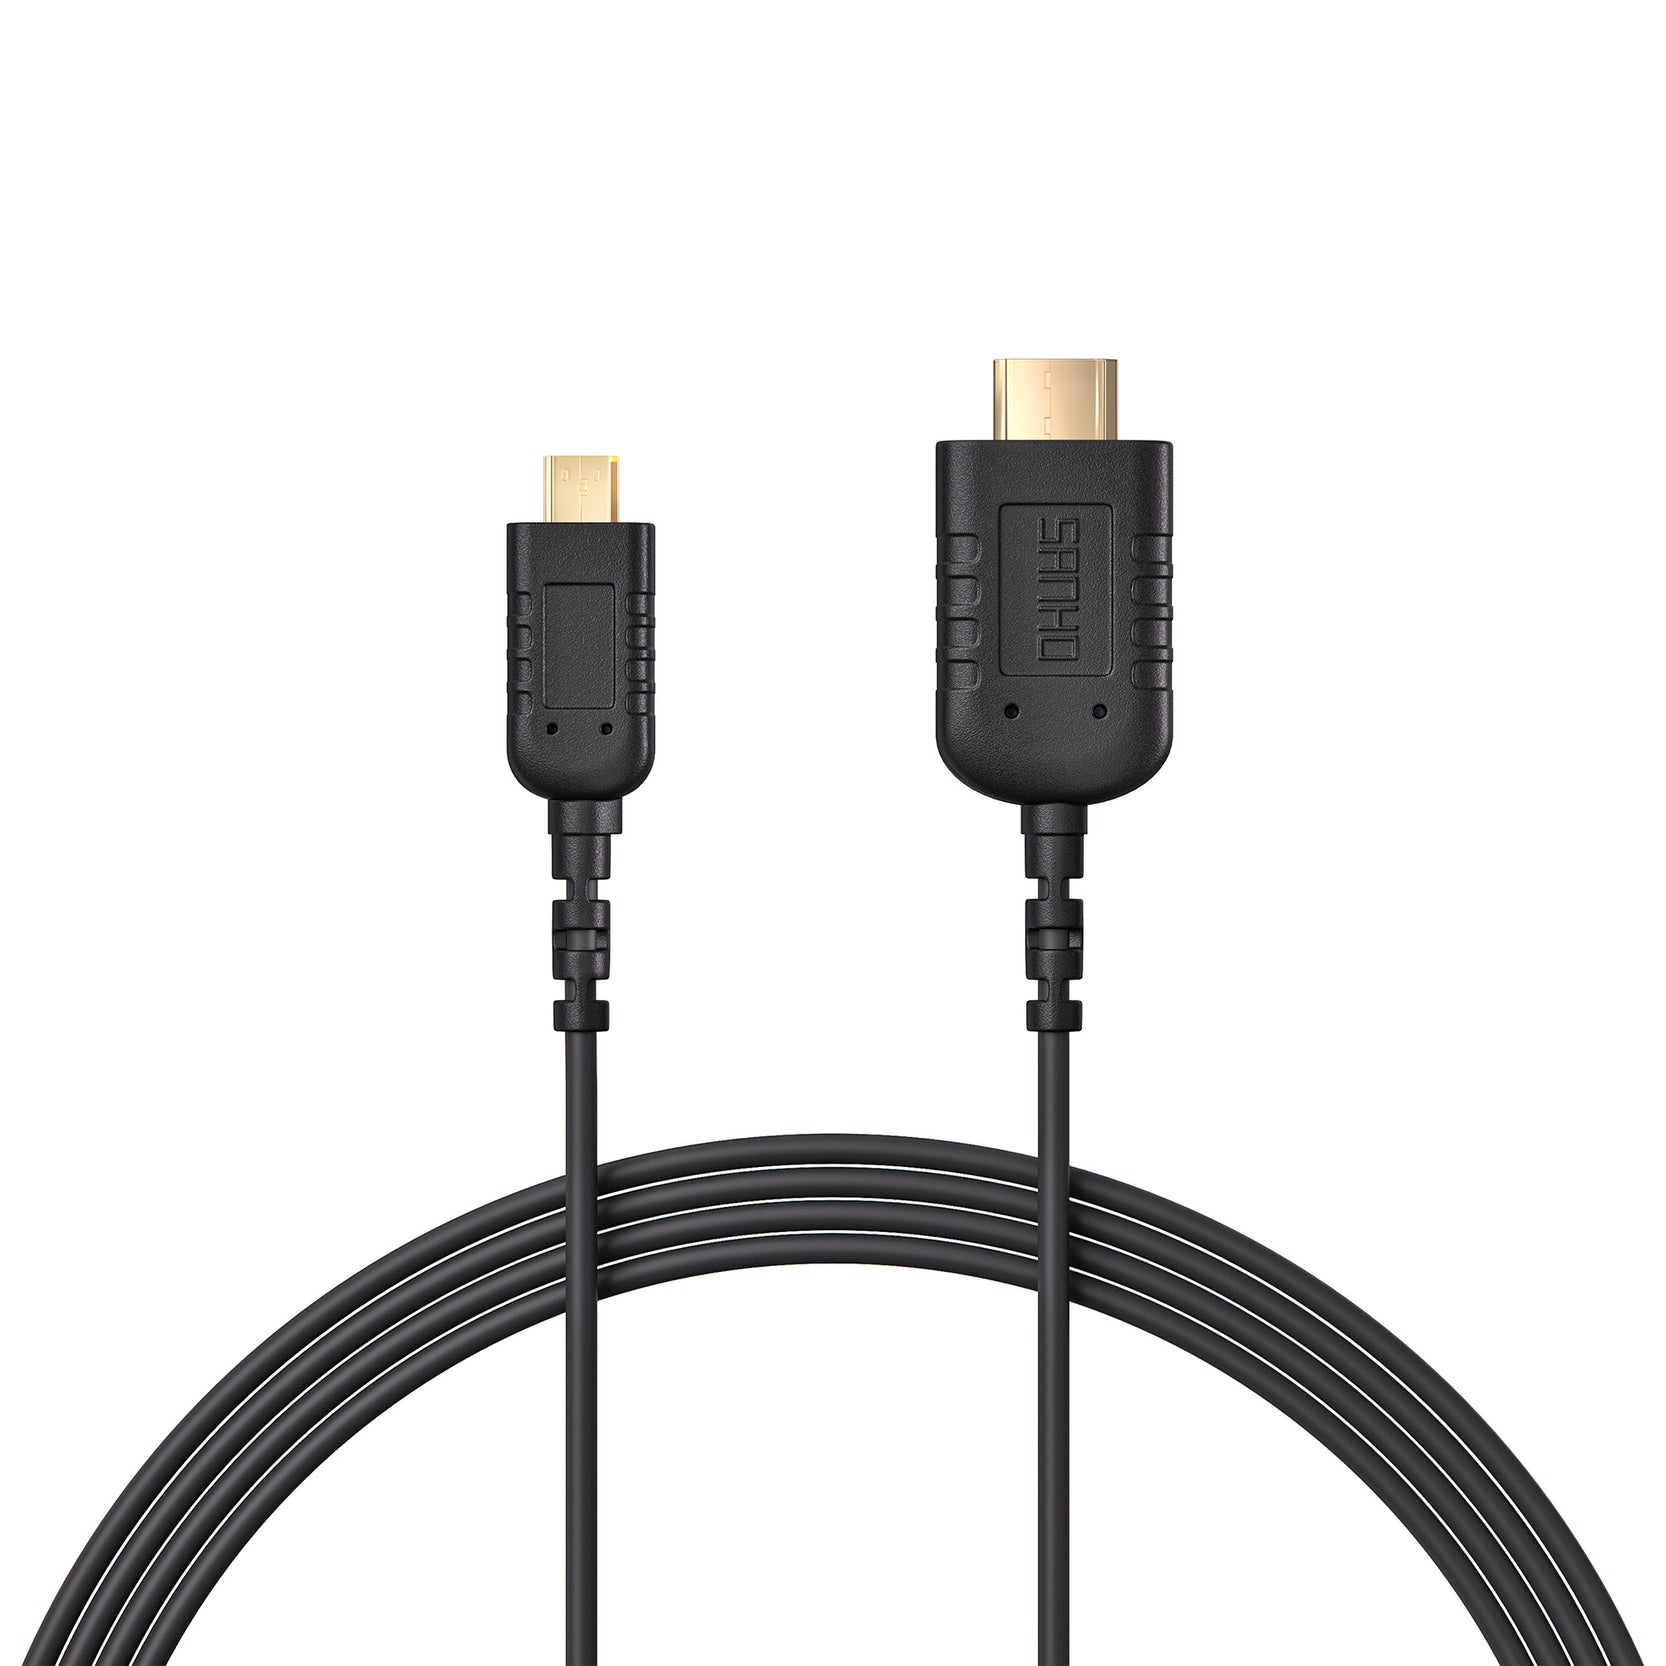 HyperThin Micro to Mini HDMI (0.8m) — World's thinnest & most flexible 4K Micro HDMI to Mini HDMI cable.